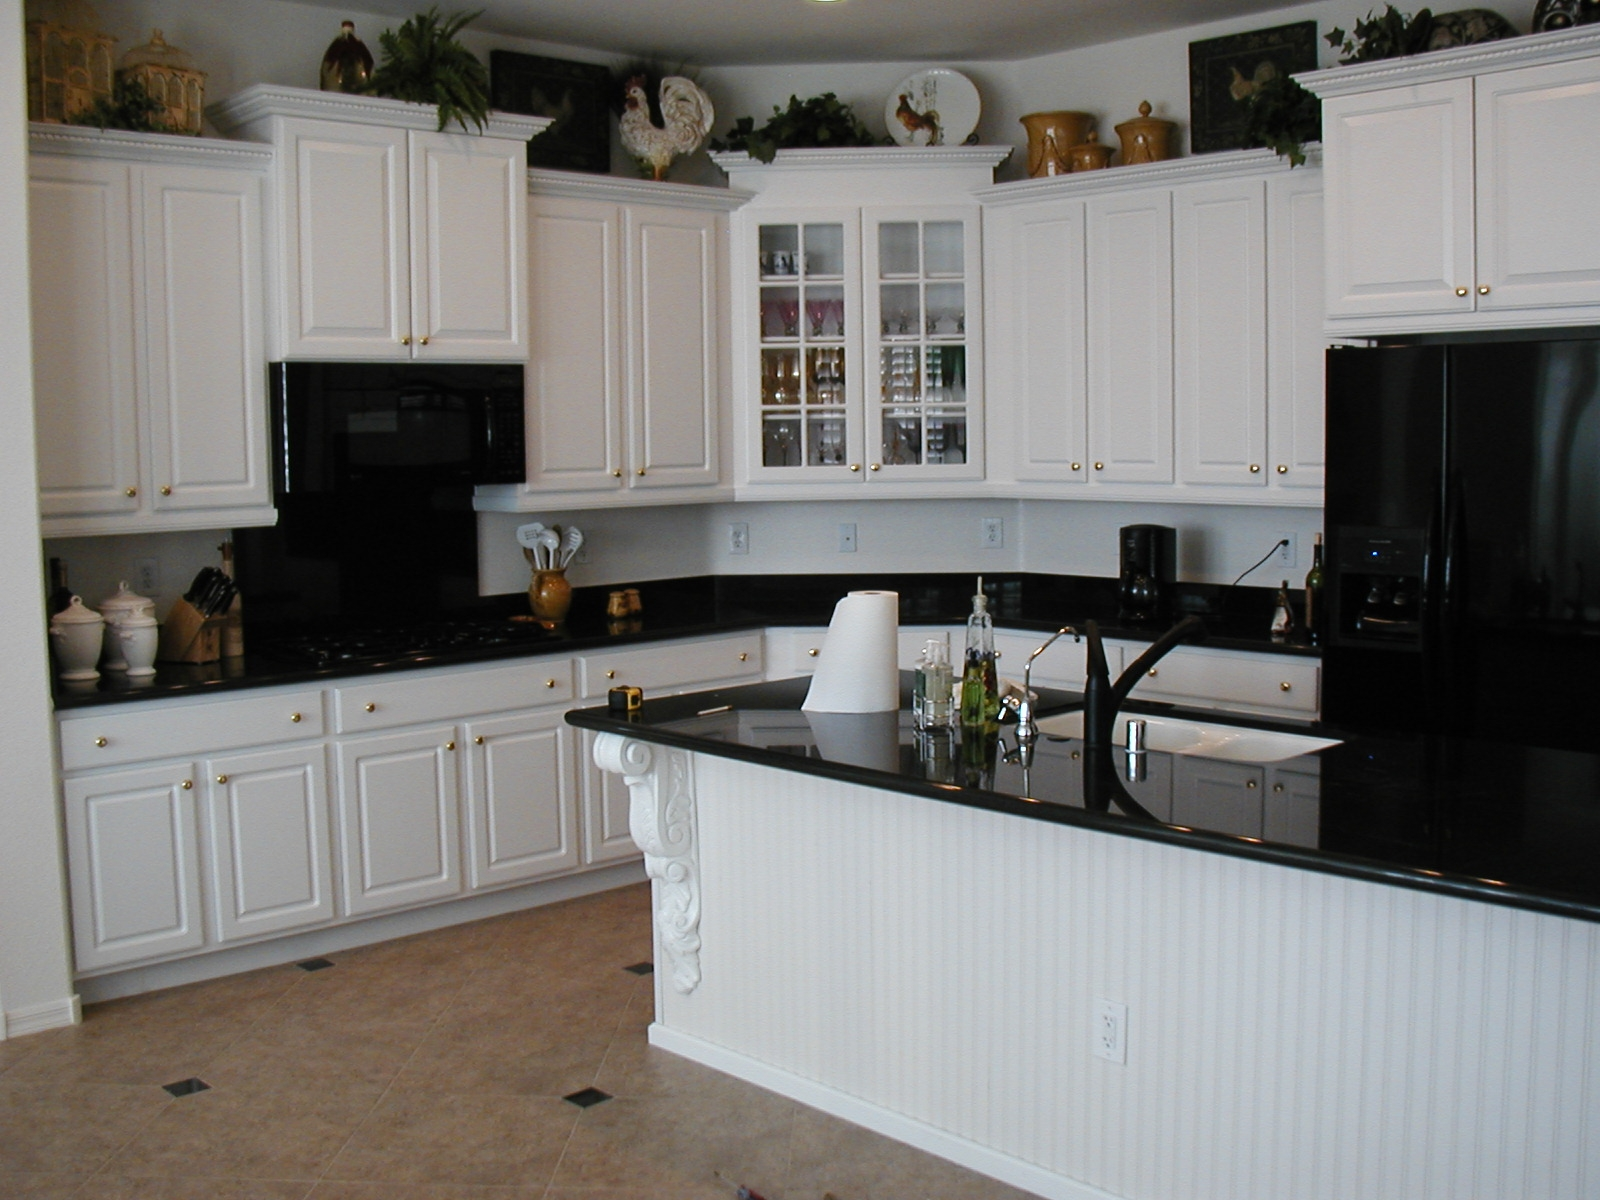 black kitchen cabinets with black appliances photo - 10